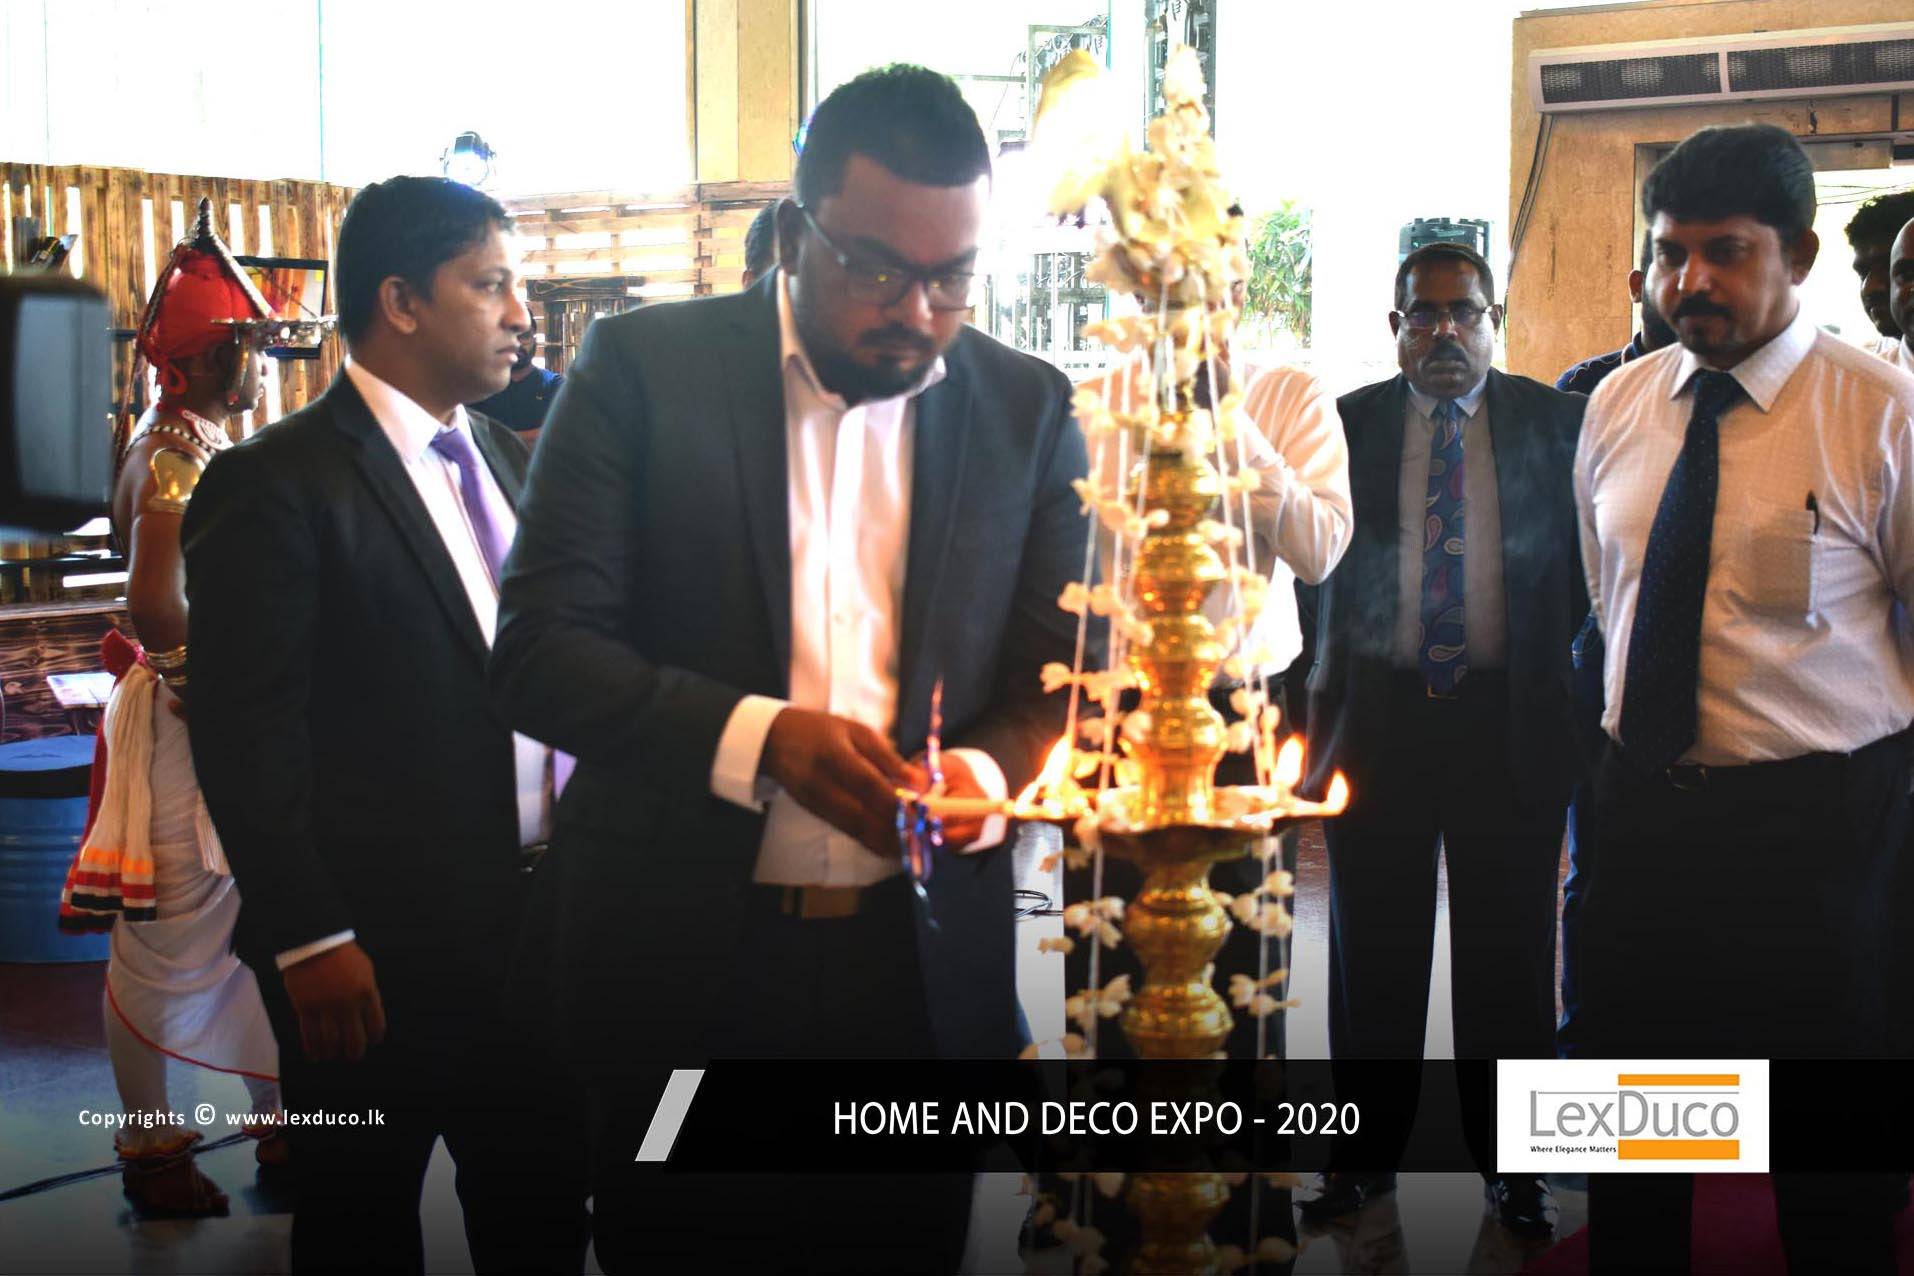 Home and Deco Expo - 2020 | Lex Duco